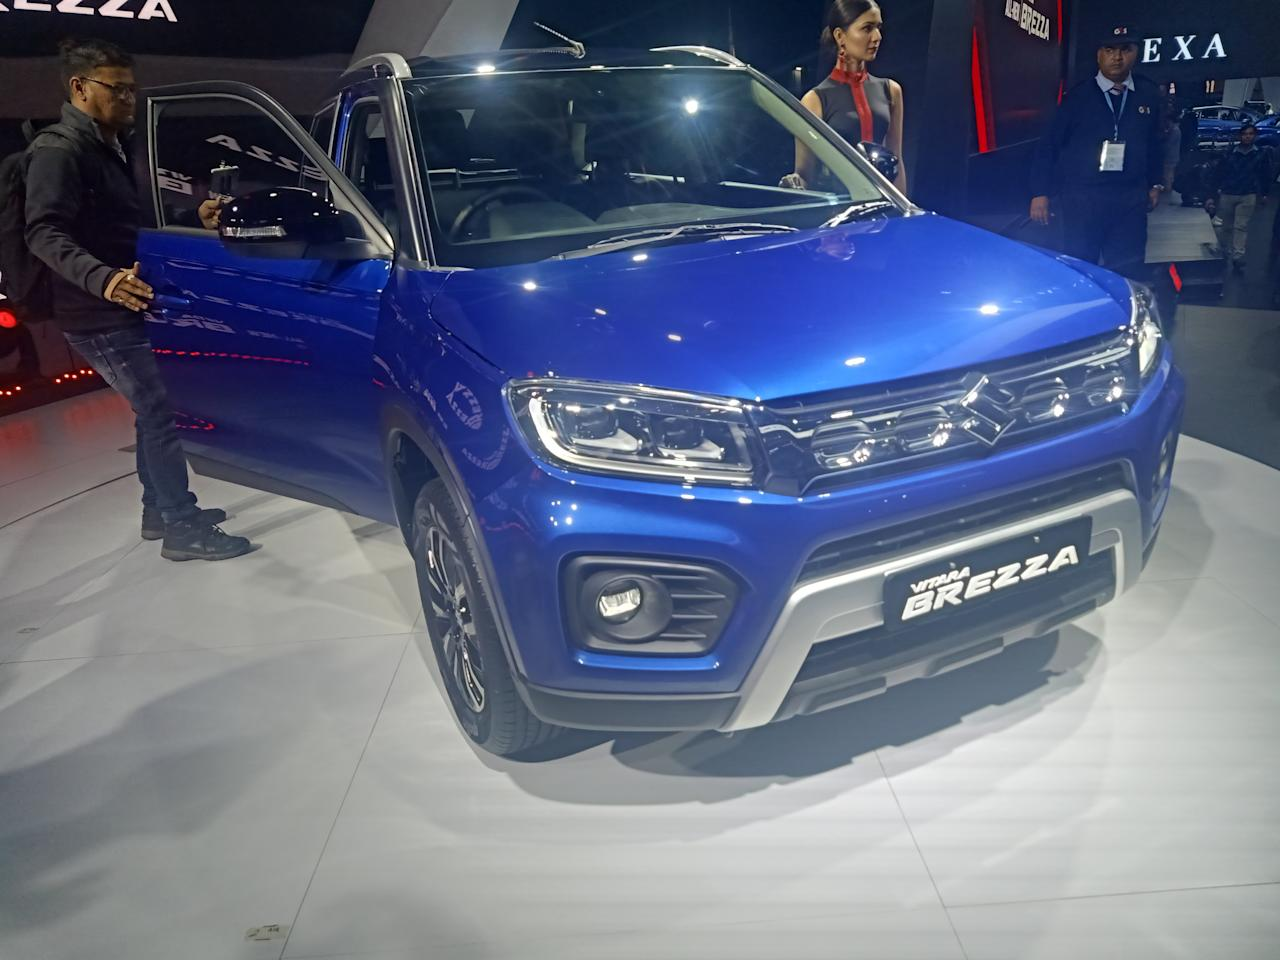 Maruti has just revealed the BS6 Vitara Brezza and the headline changes are an updated look, more features and, of course, the much-awaited petrol motor.